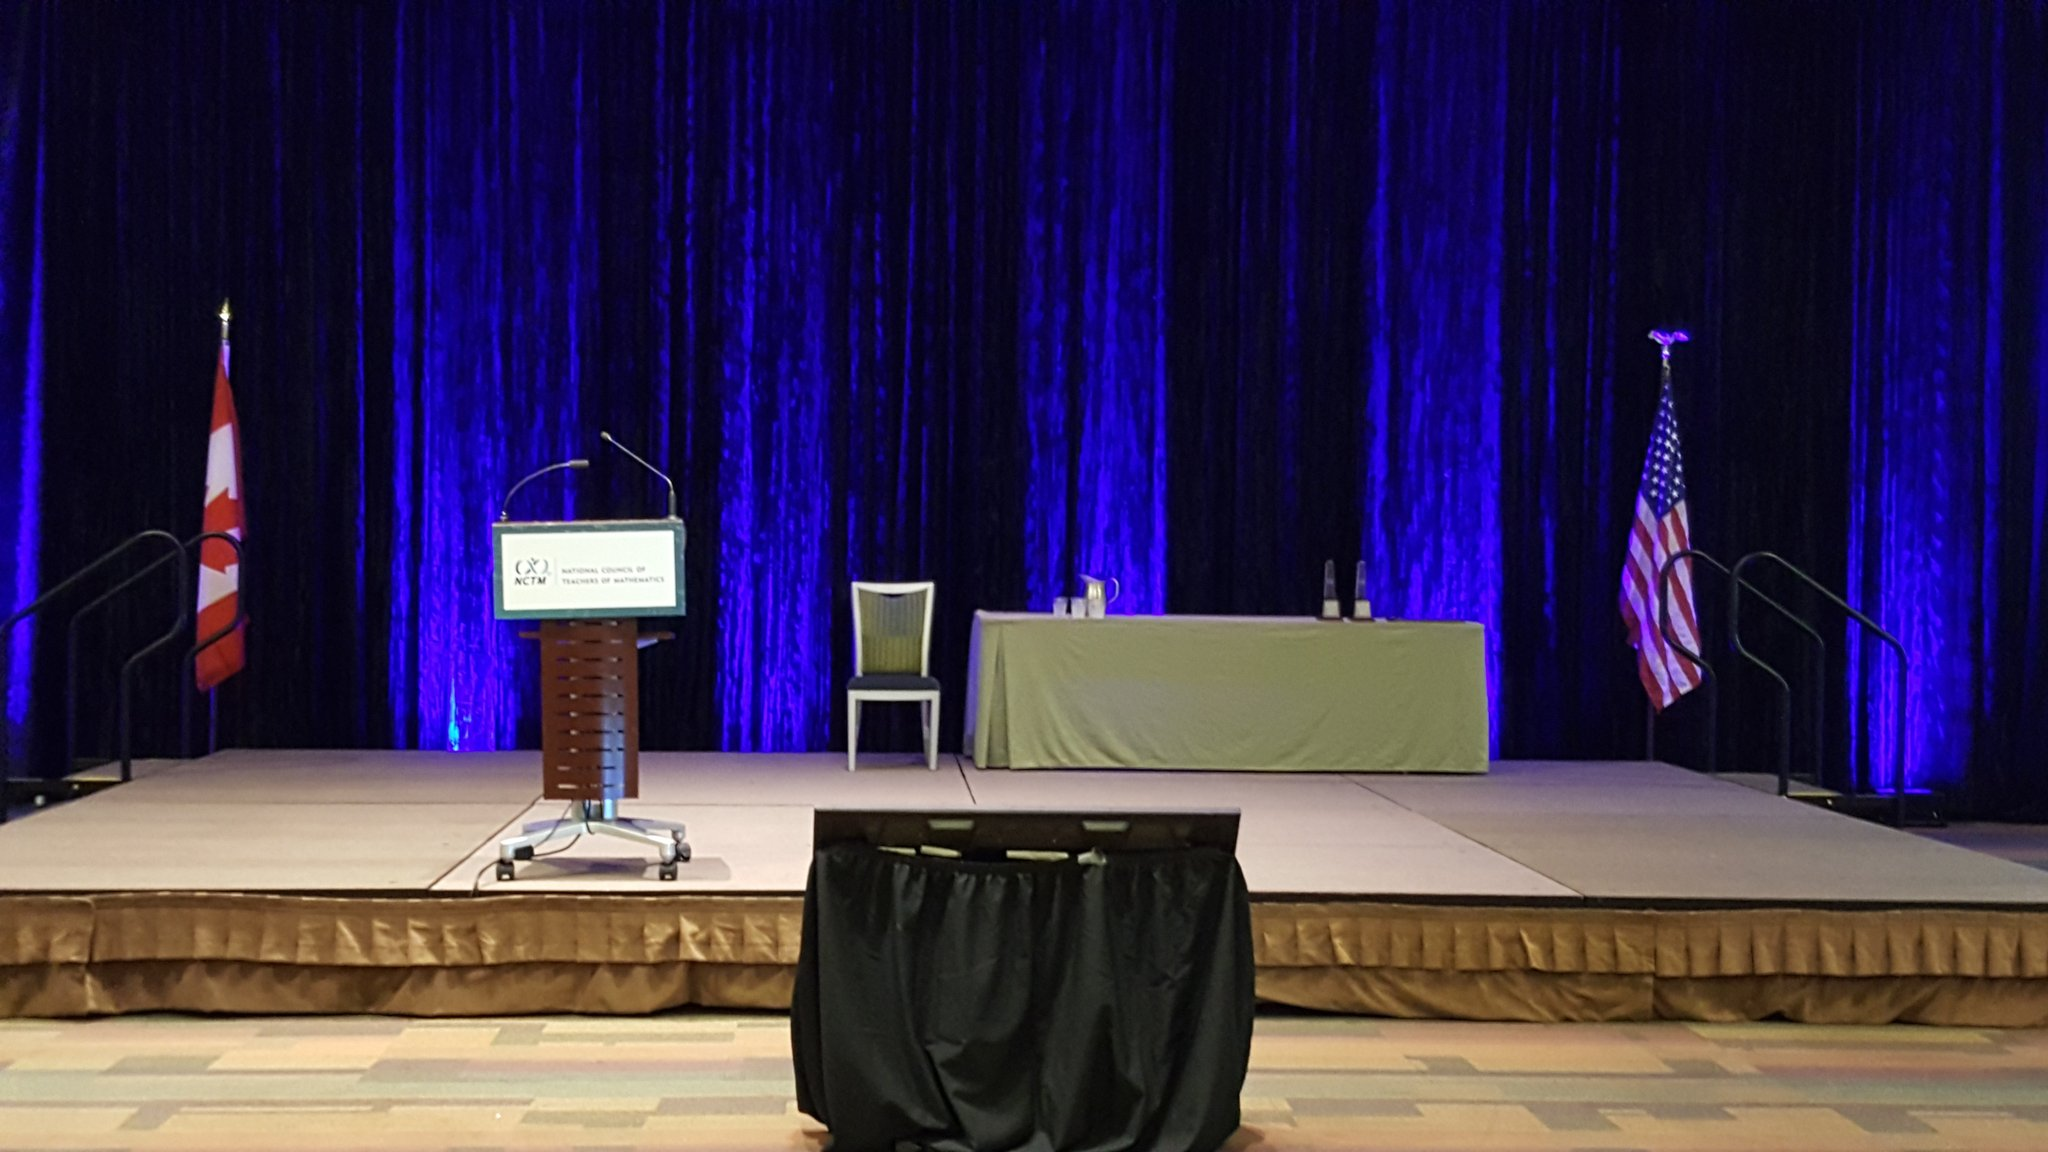 Hurry to #NCTMregionals bc the podium won't be empty long! This is gonna ROCK 6 PRESIDENTS #presIgnite https://t.co/KroIpTtHTP